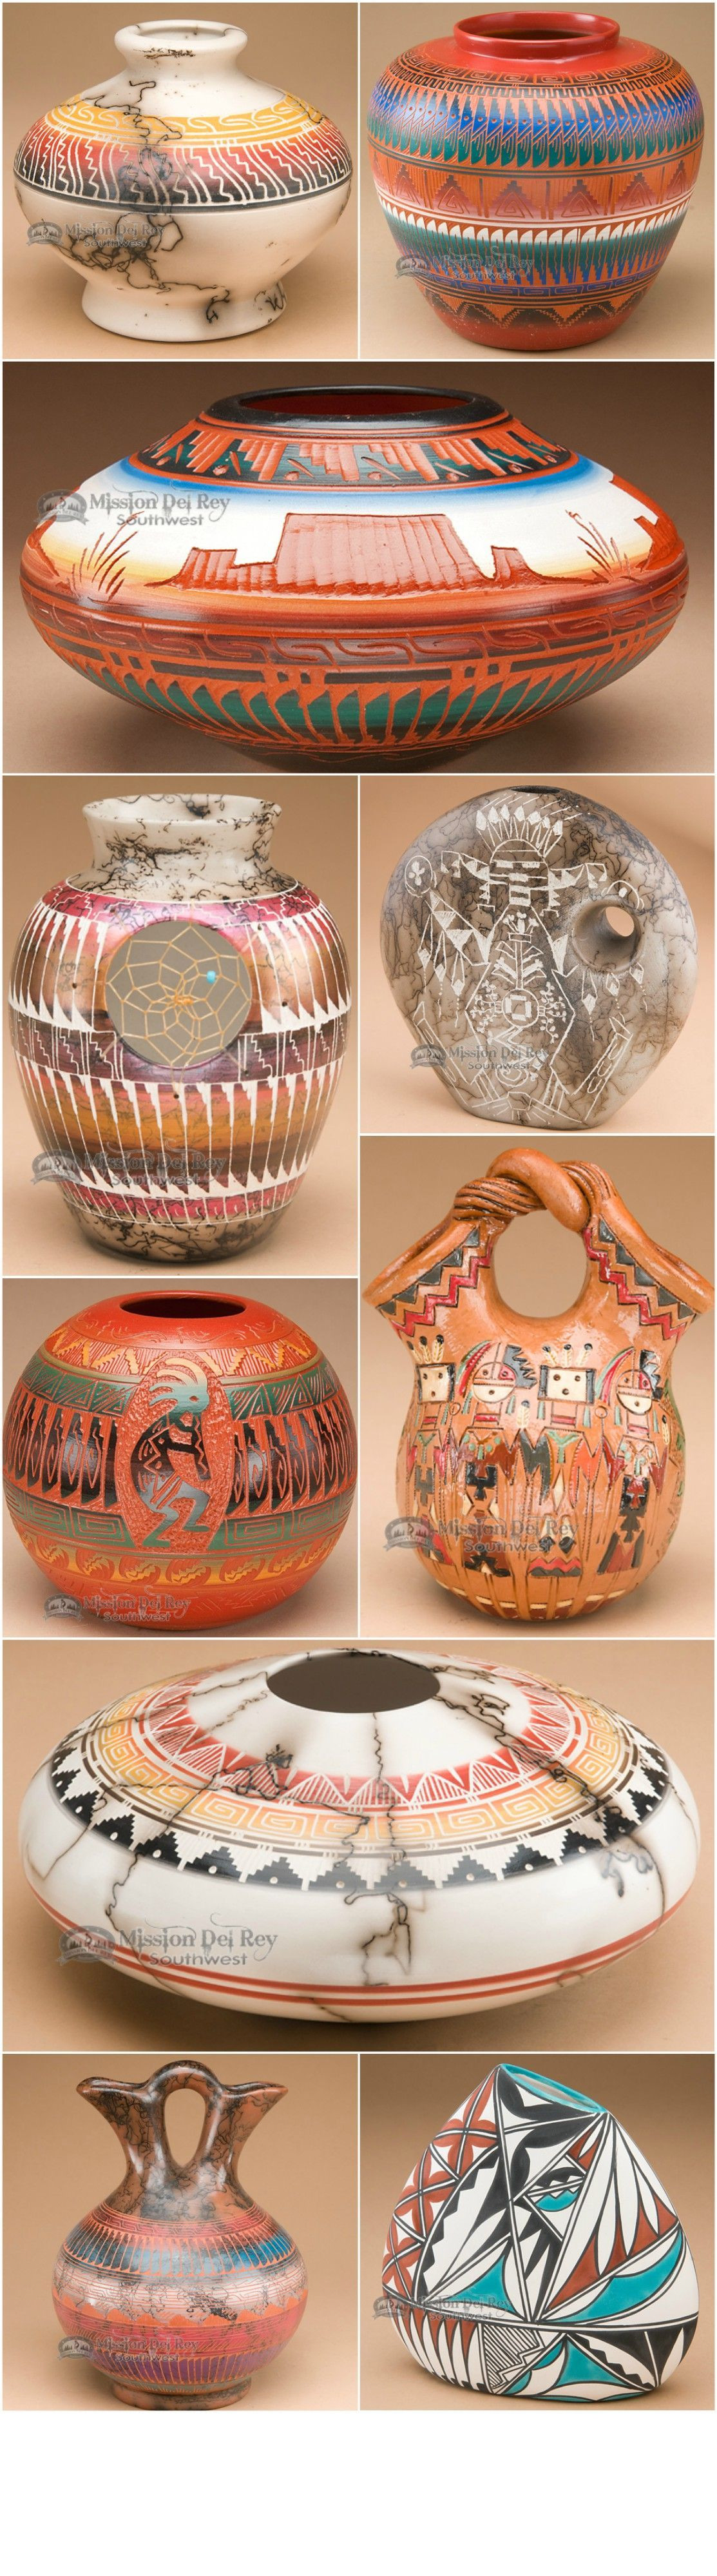 vases accent pieces of 26 vase market coupon the weekly world within american indian pottery is very popular among collectors of